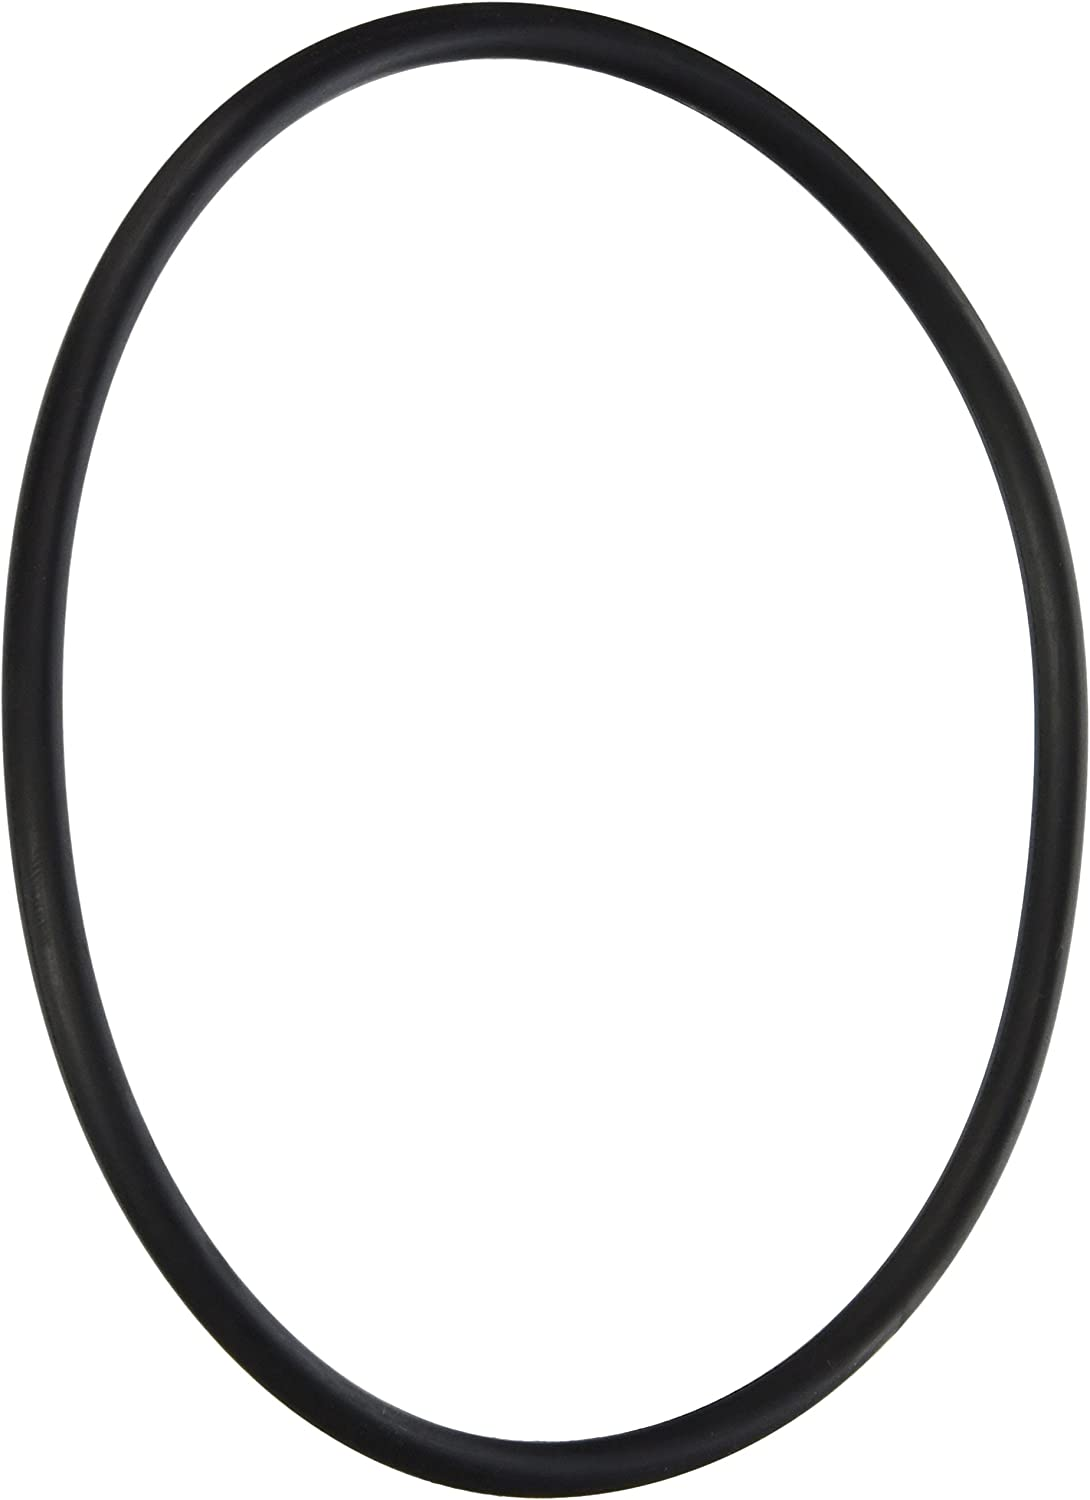 Pentair 35505-1440 Trap Cover O-Ring Replacement for Pentair Pool and Spa Inground Pumps